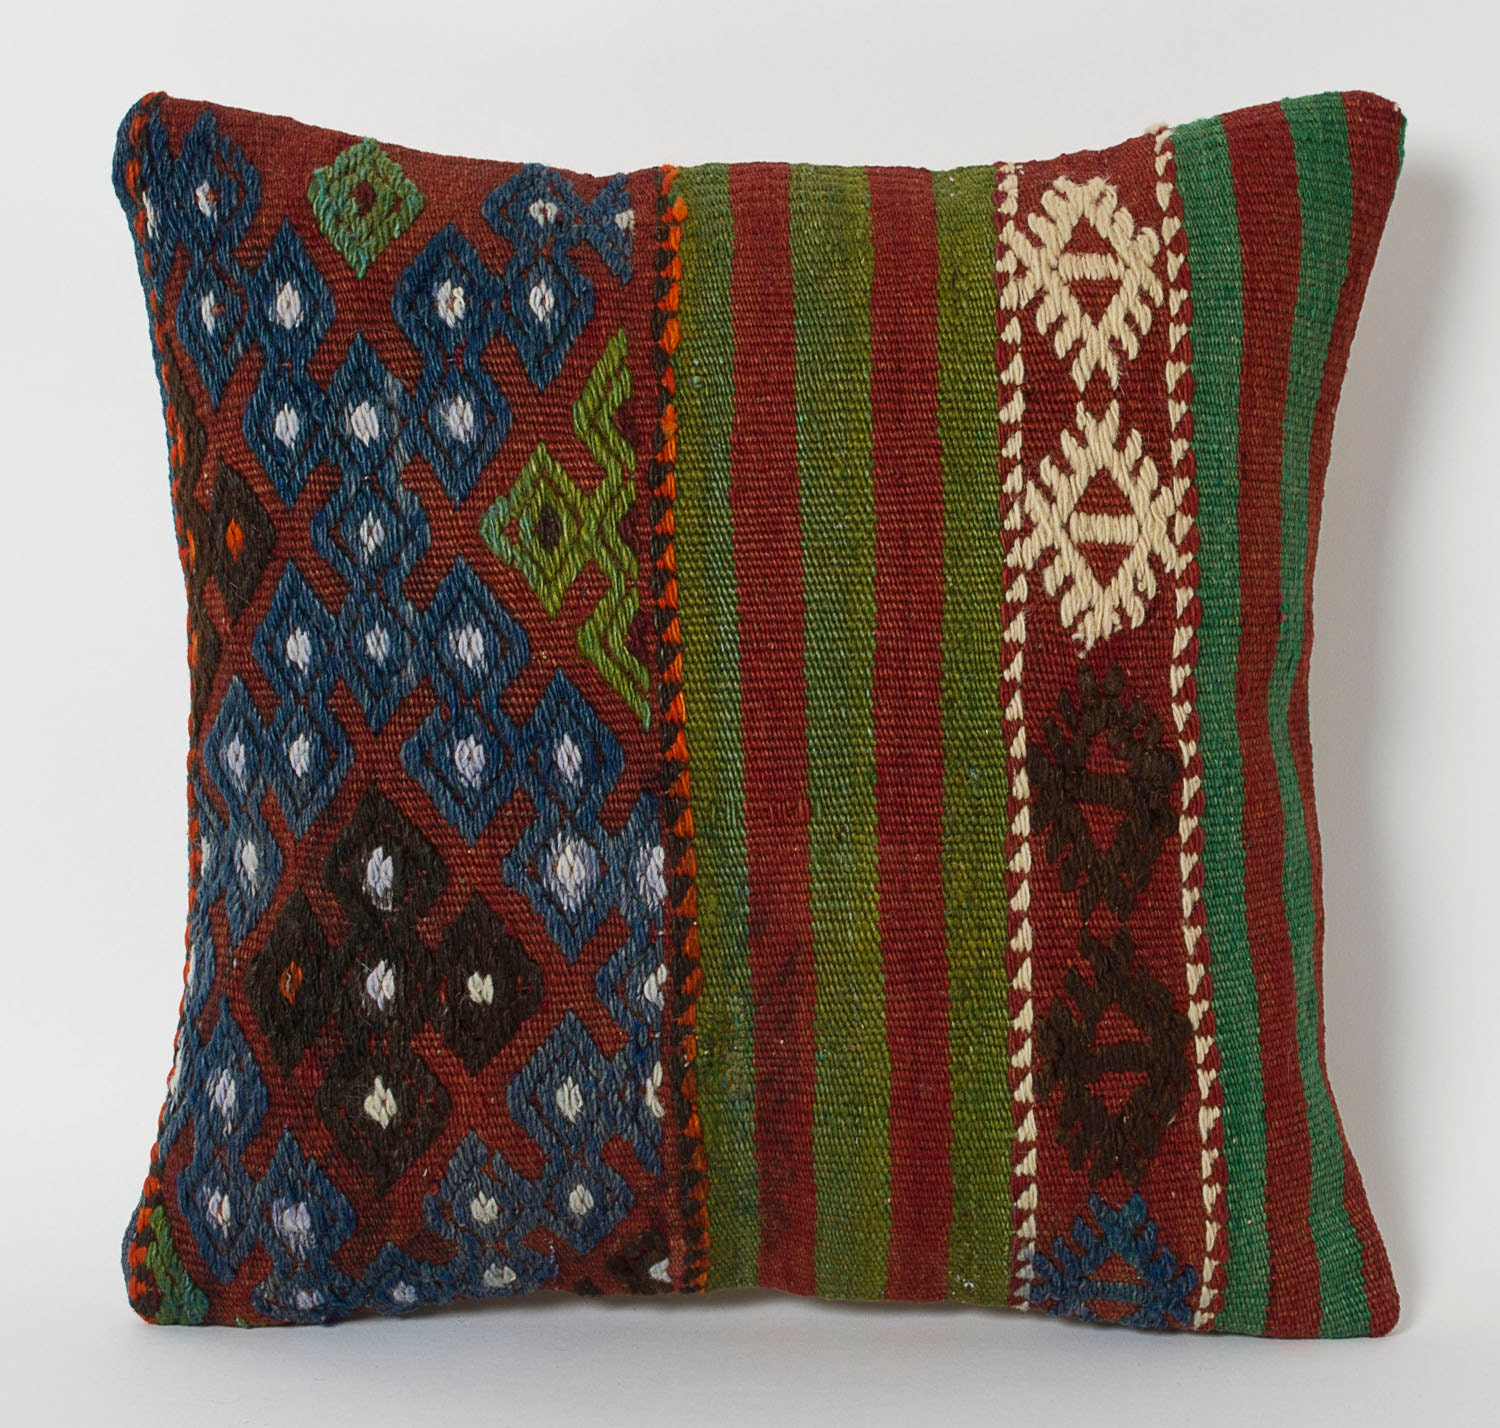 Decorative Pillows Kilim : Kilim Pillow Decorative Pillows For Sofa Throw Pillows Couch